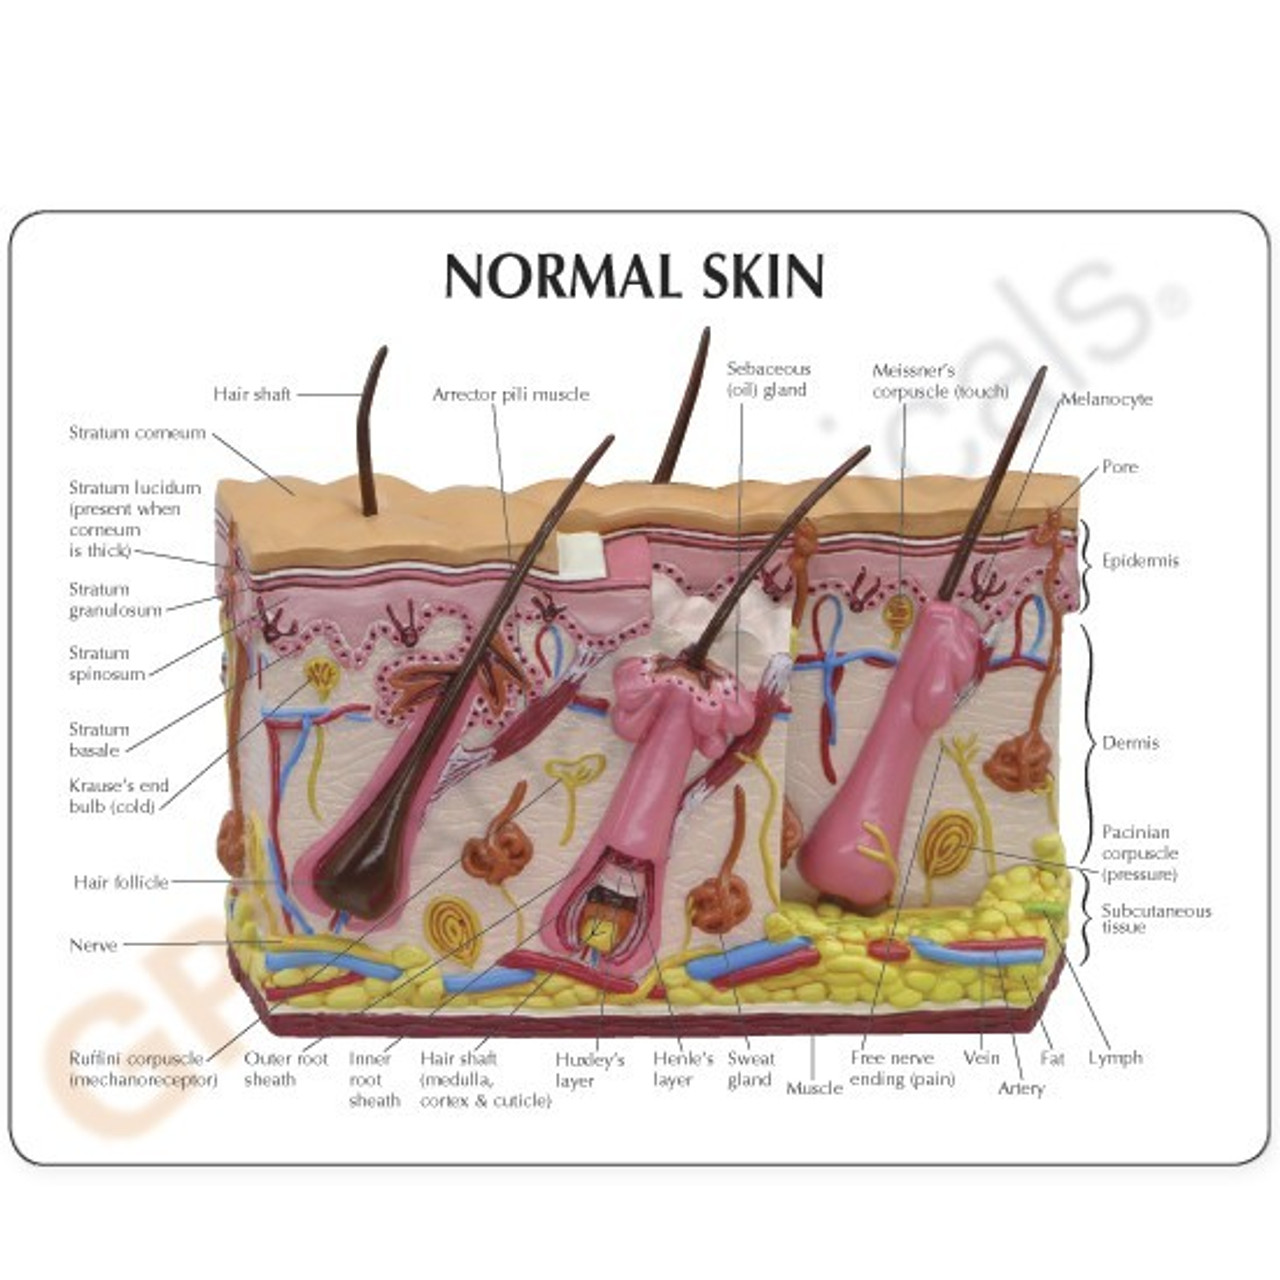 Aging Skin Model description Card